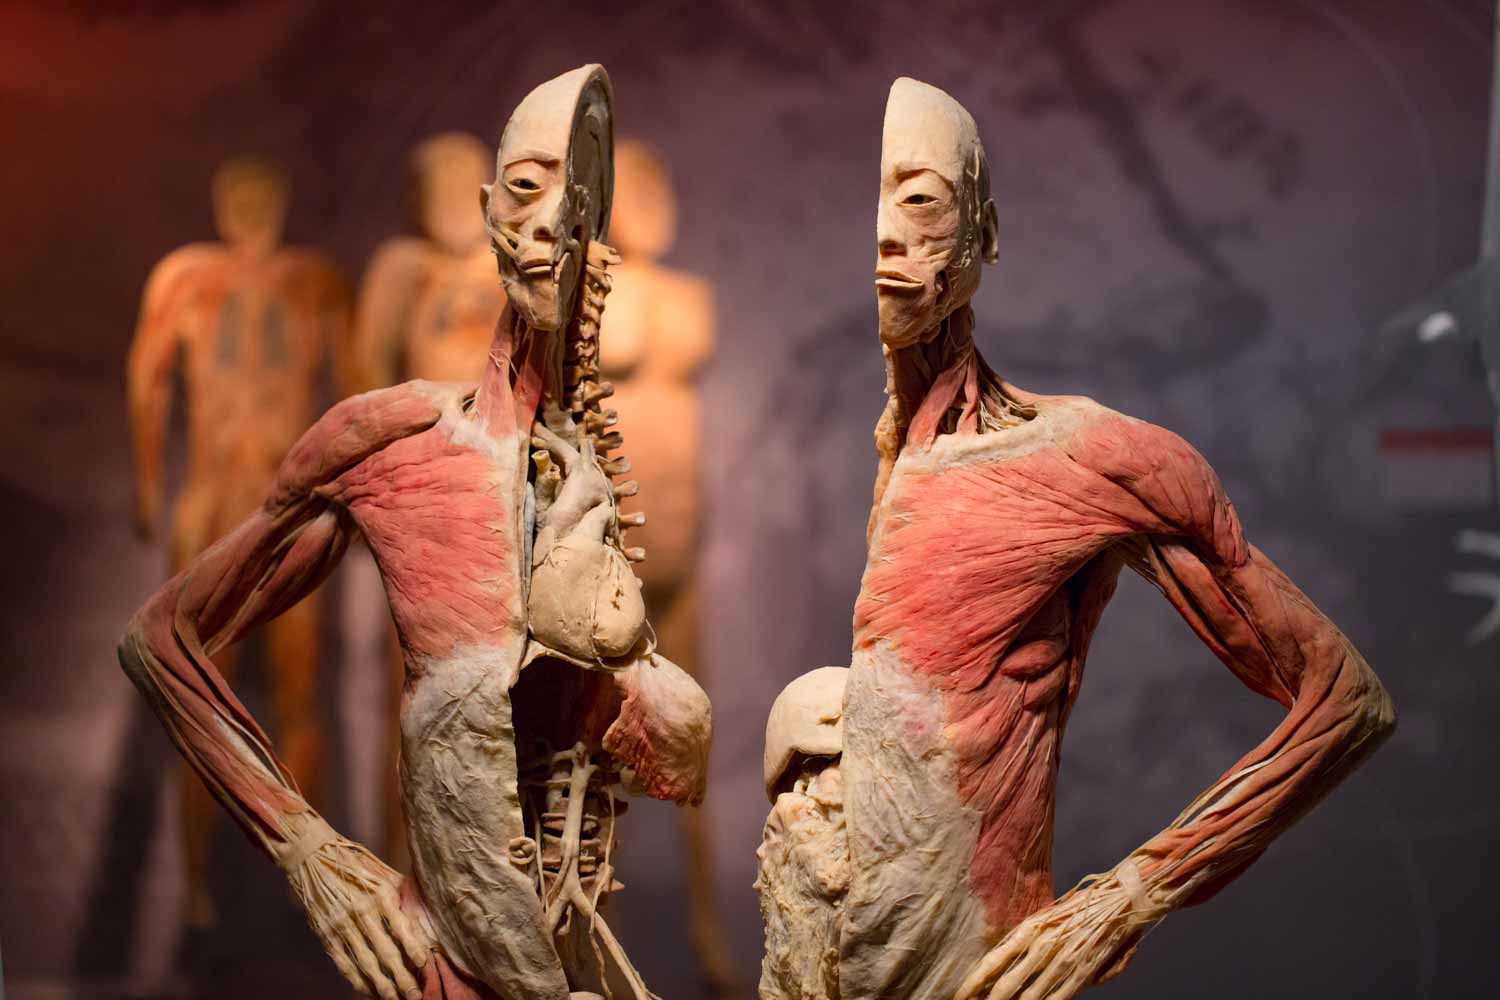 Real Bodies Hunger Exhibit at Bally's